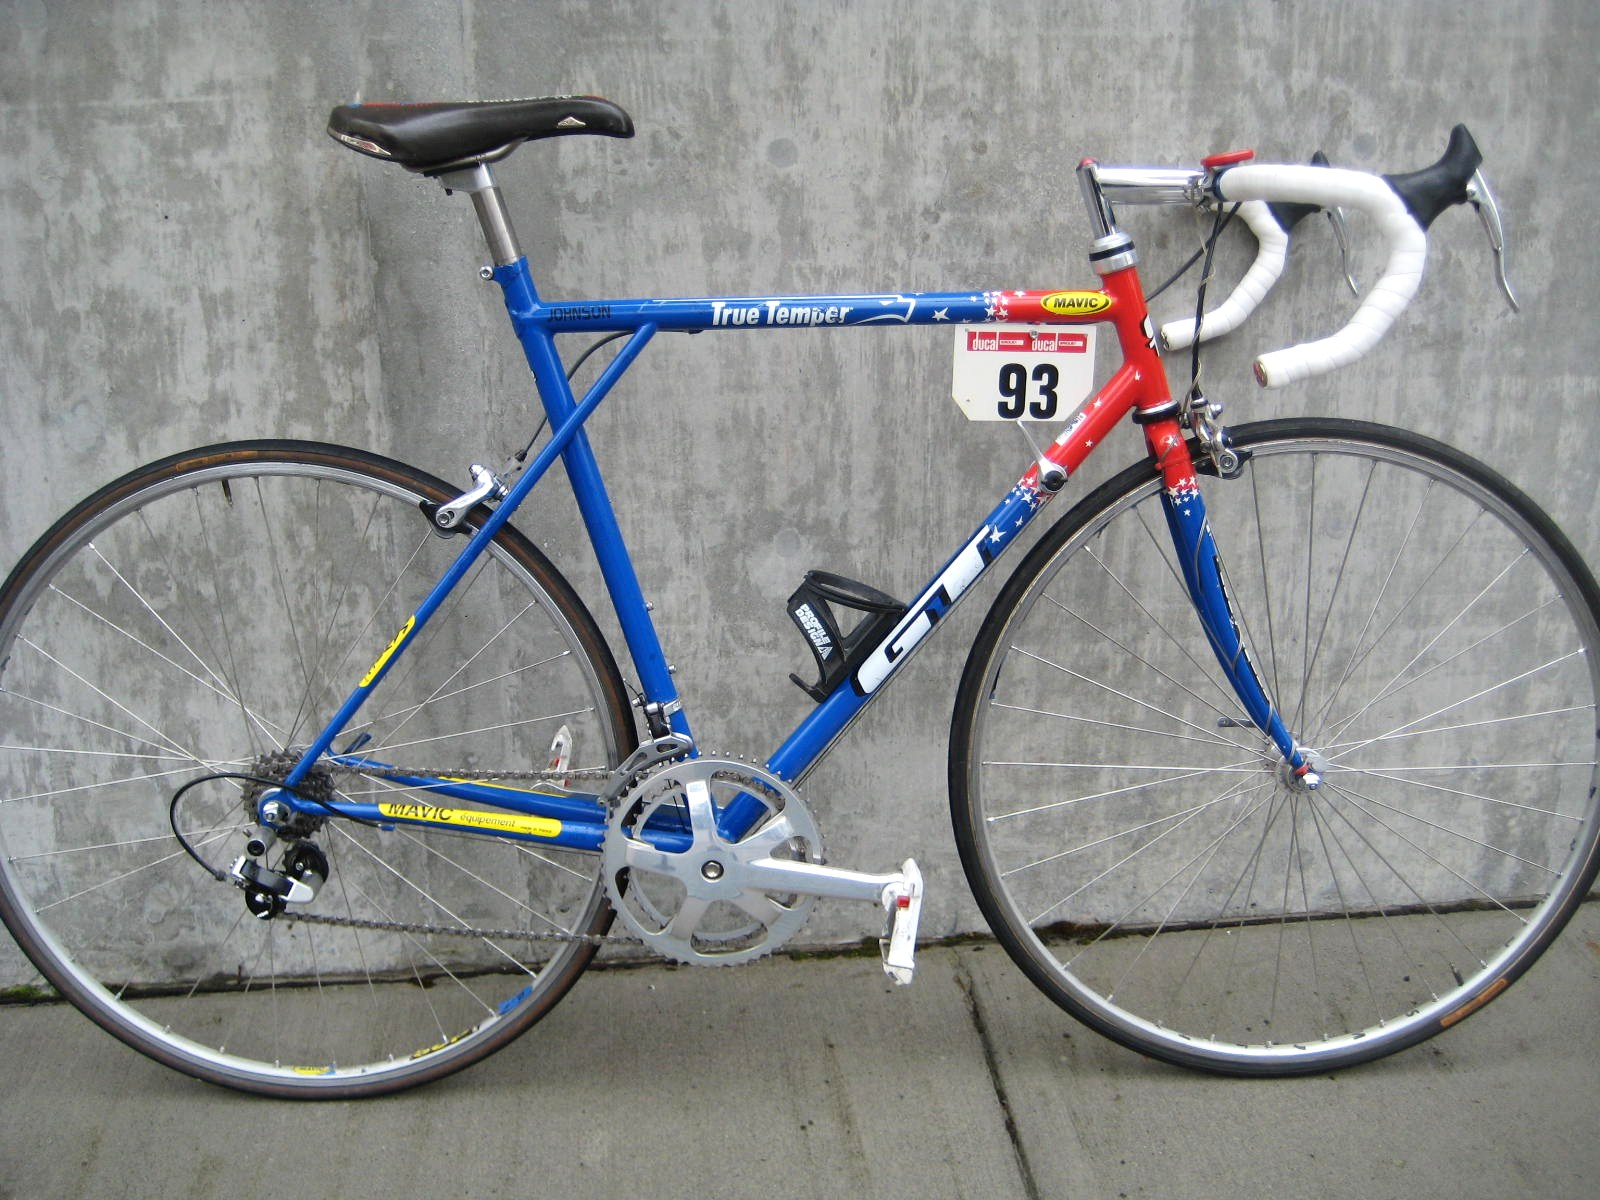 1994 GT national team racing bike | Classic Cycle Bainbridge Island ...